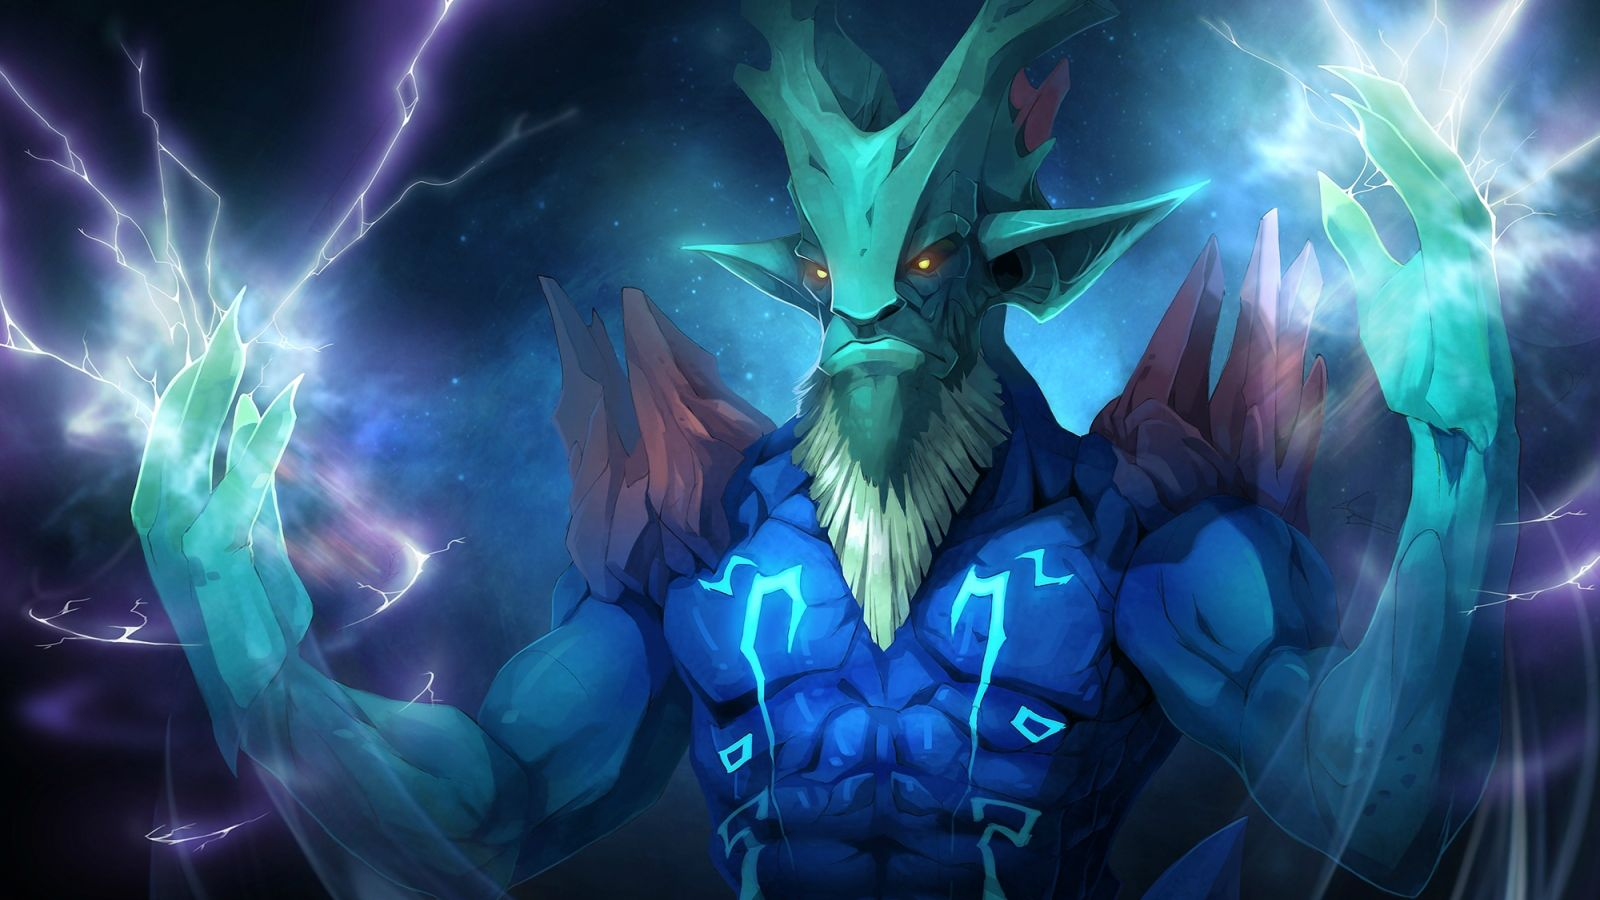 Wallpaper Abyss Explore the Collection Dota Video Game DotA 2 458830 1600x900